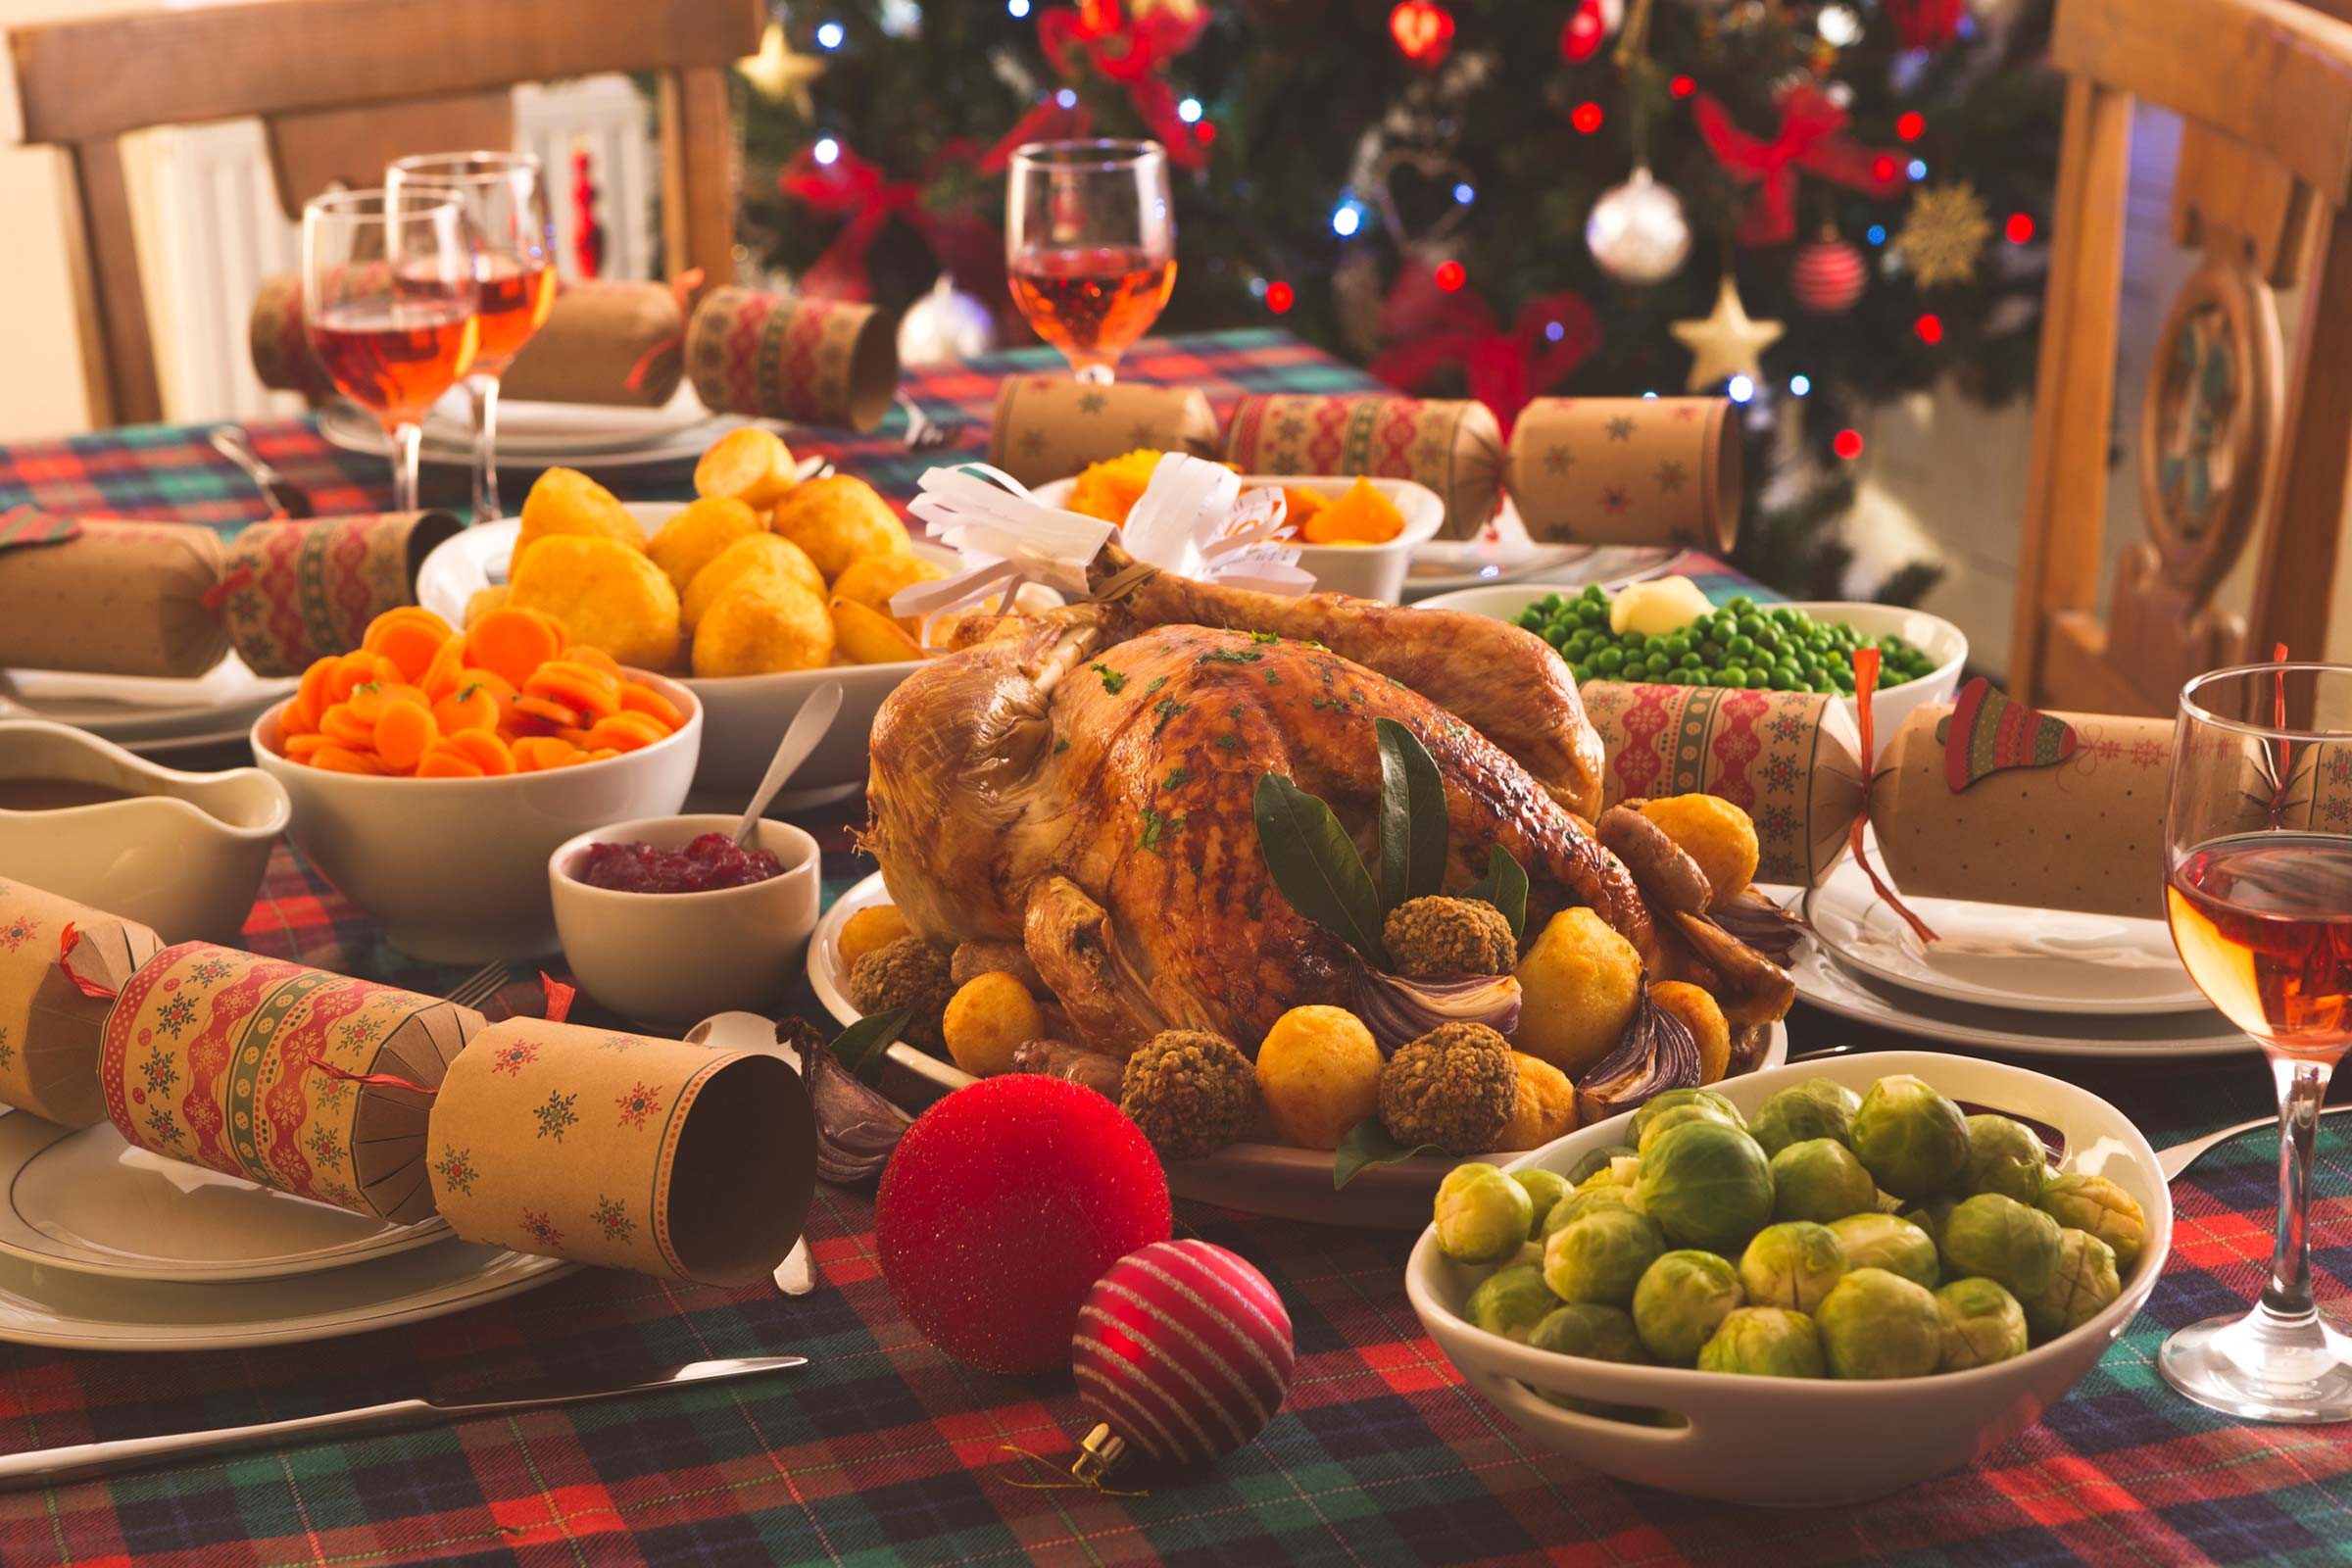 Typical Christmas Dinner  Tips to Save Money on Holiday Shopping